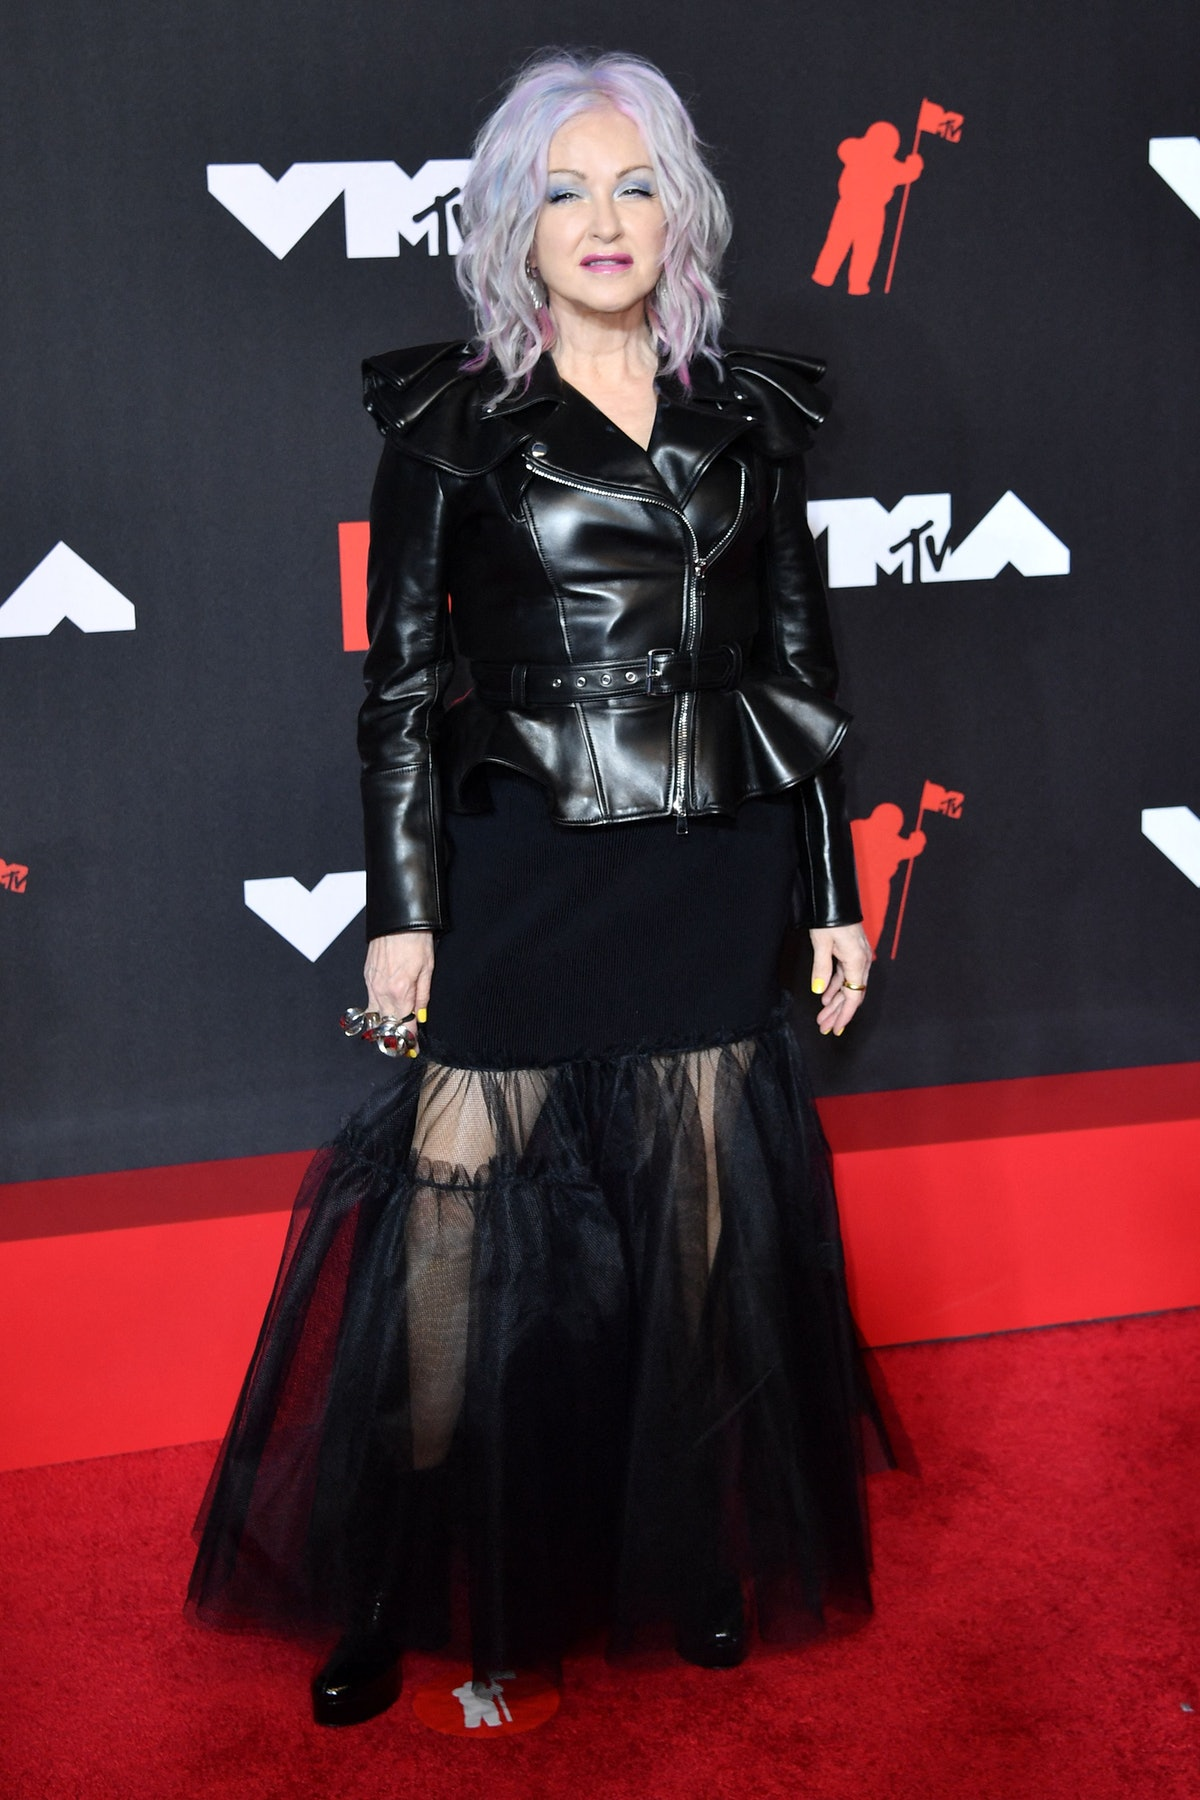 Cyndi Lauper arrives for the 2021 MTV Video Music Awards at Barclays Center in Brooklyn, New York, S...